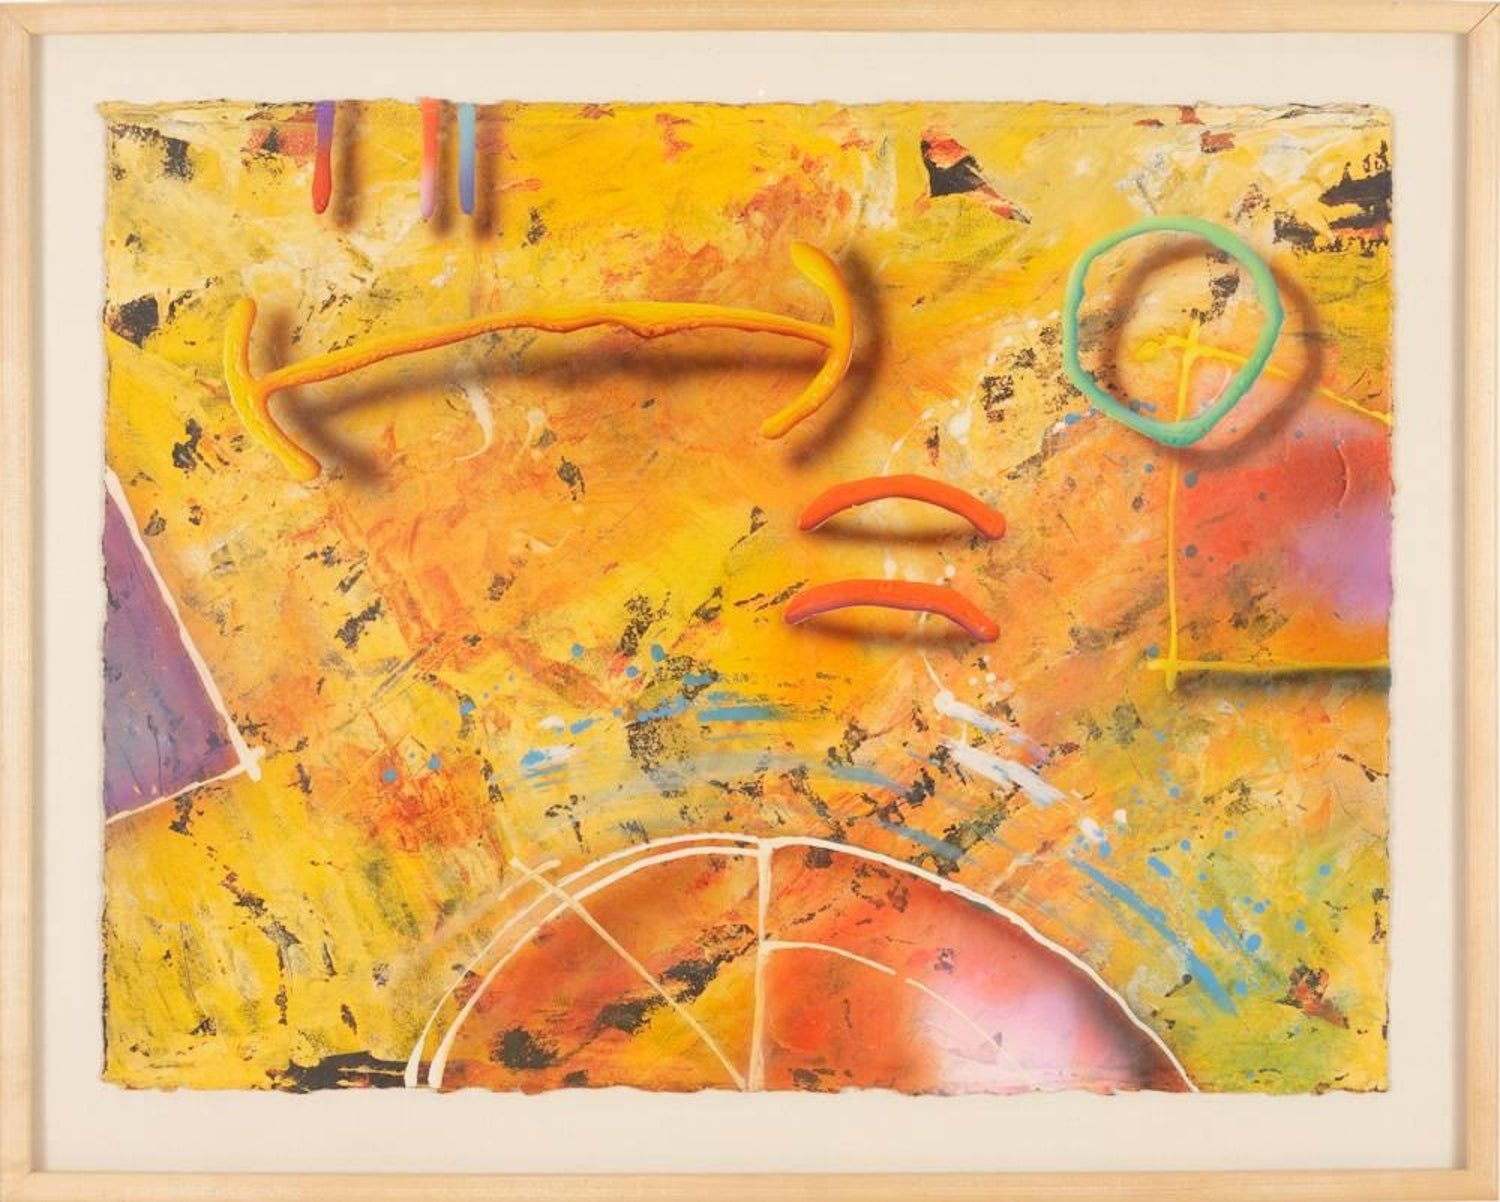 Unknown - Graffiti Art #2 by S. Mooney, Painting For Sale at 1stdibs